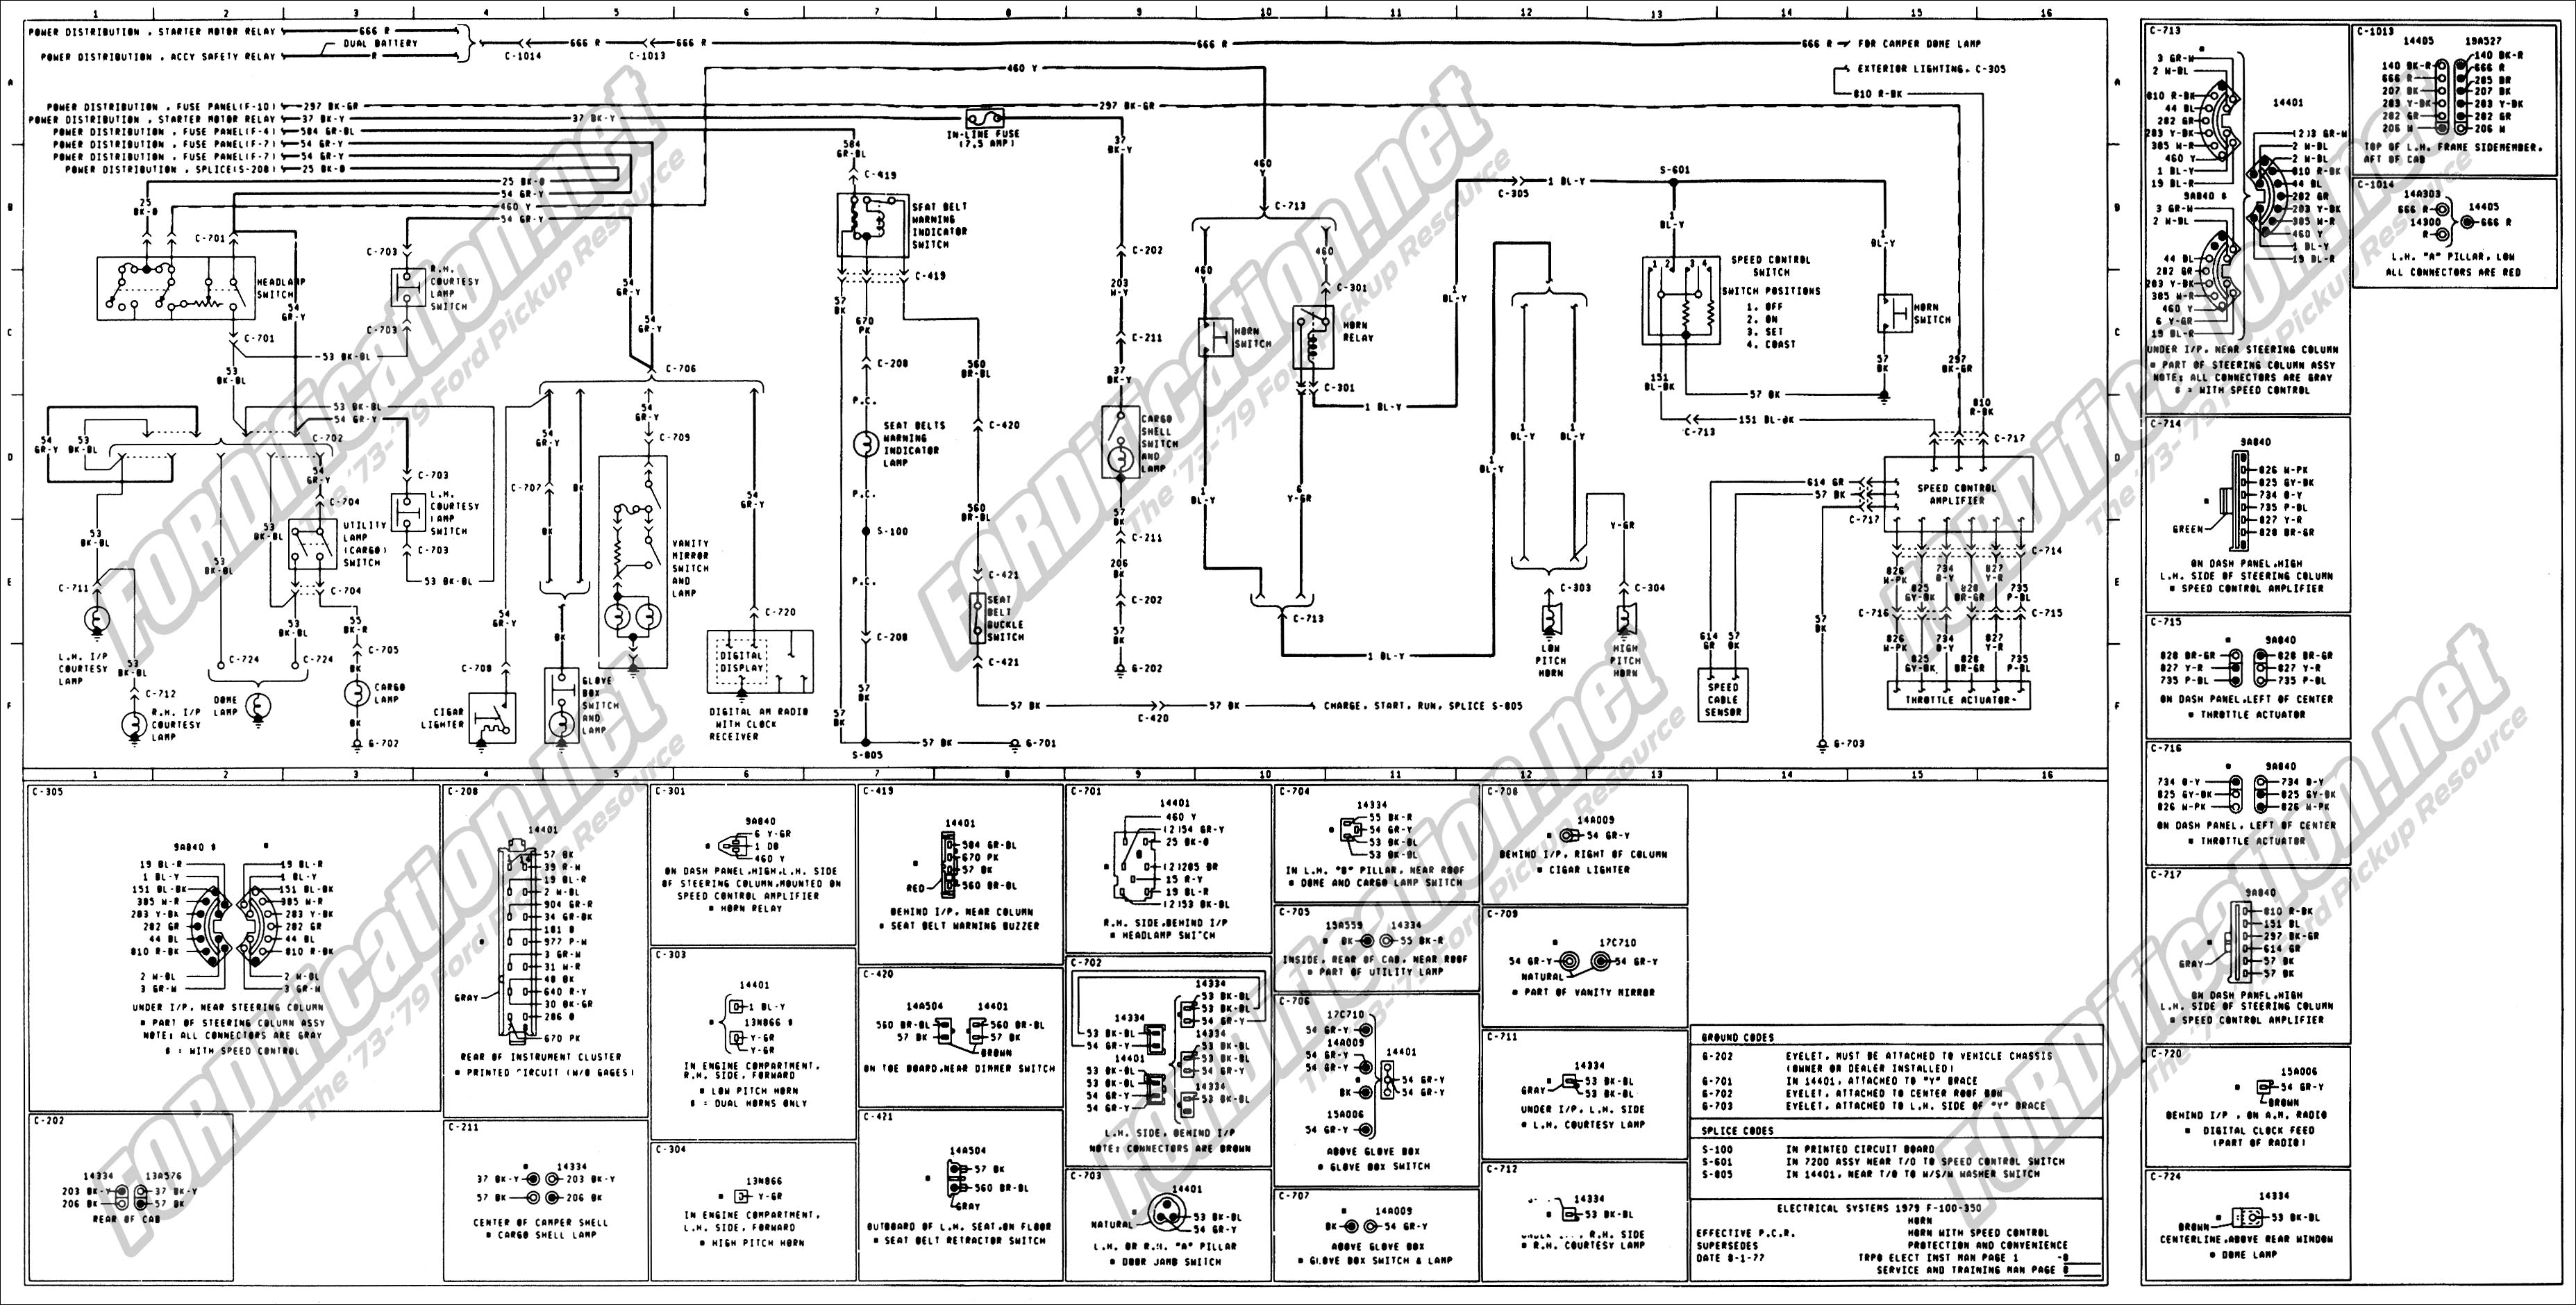 Master Wiring Diagram 68 Mustang Fuse Diagrams 1970 Ignition 2010 Ford For Tail Lihgt Library Harness